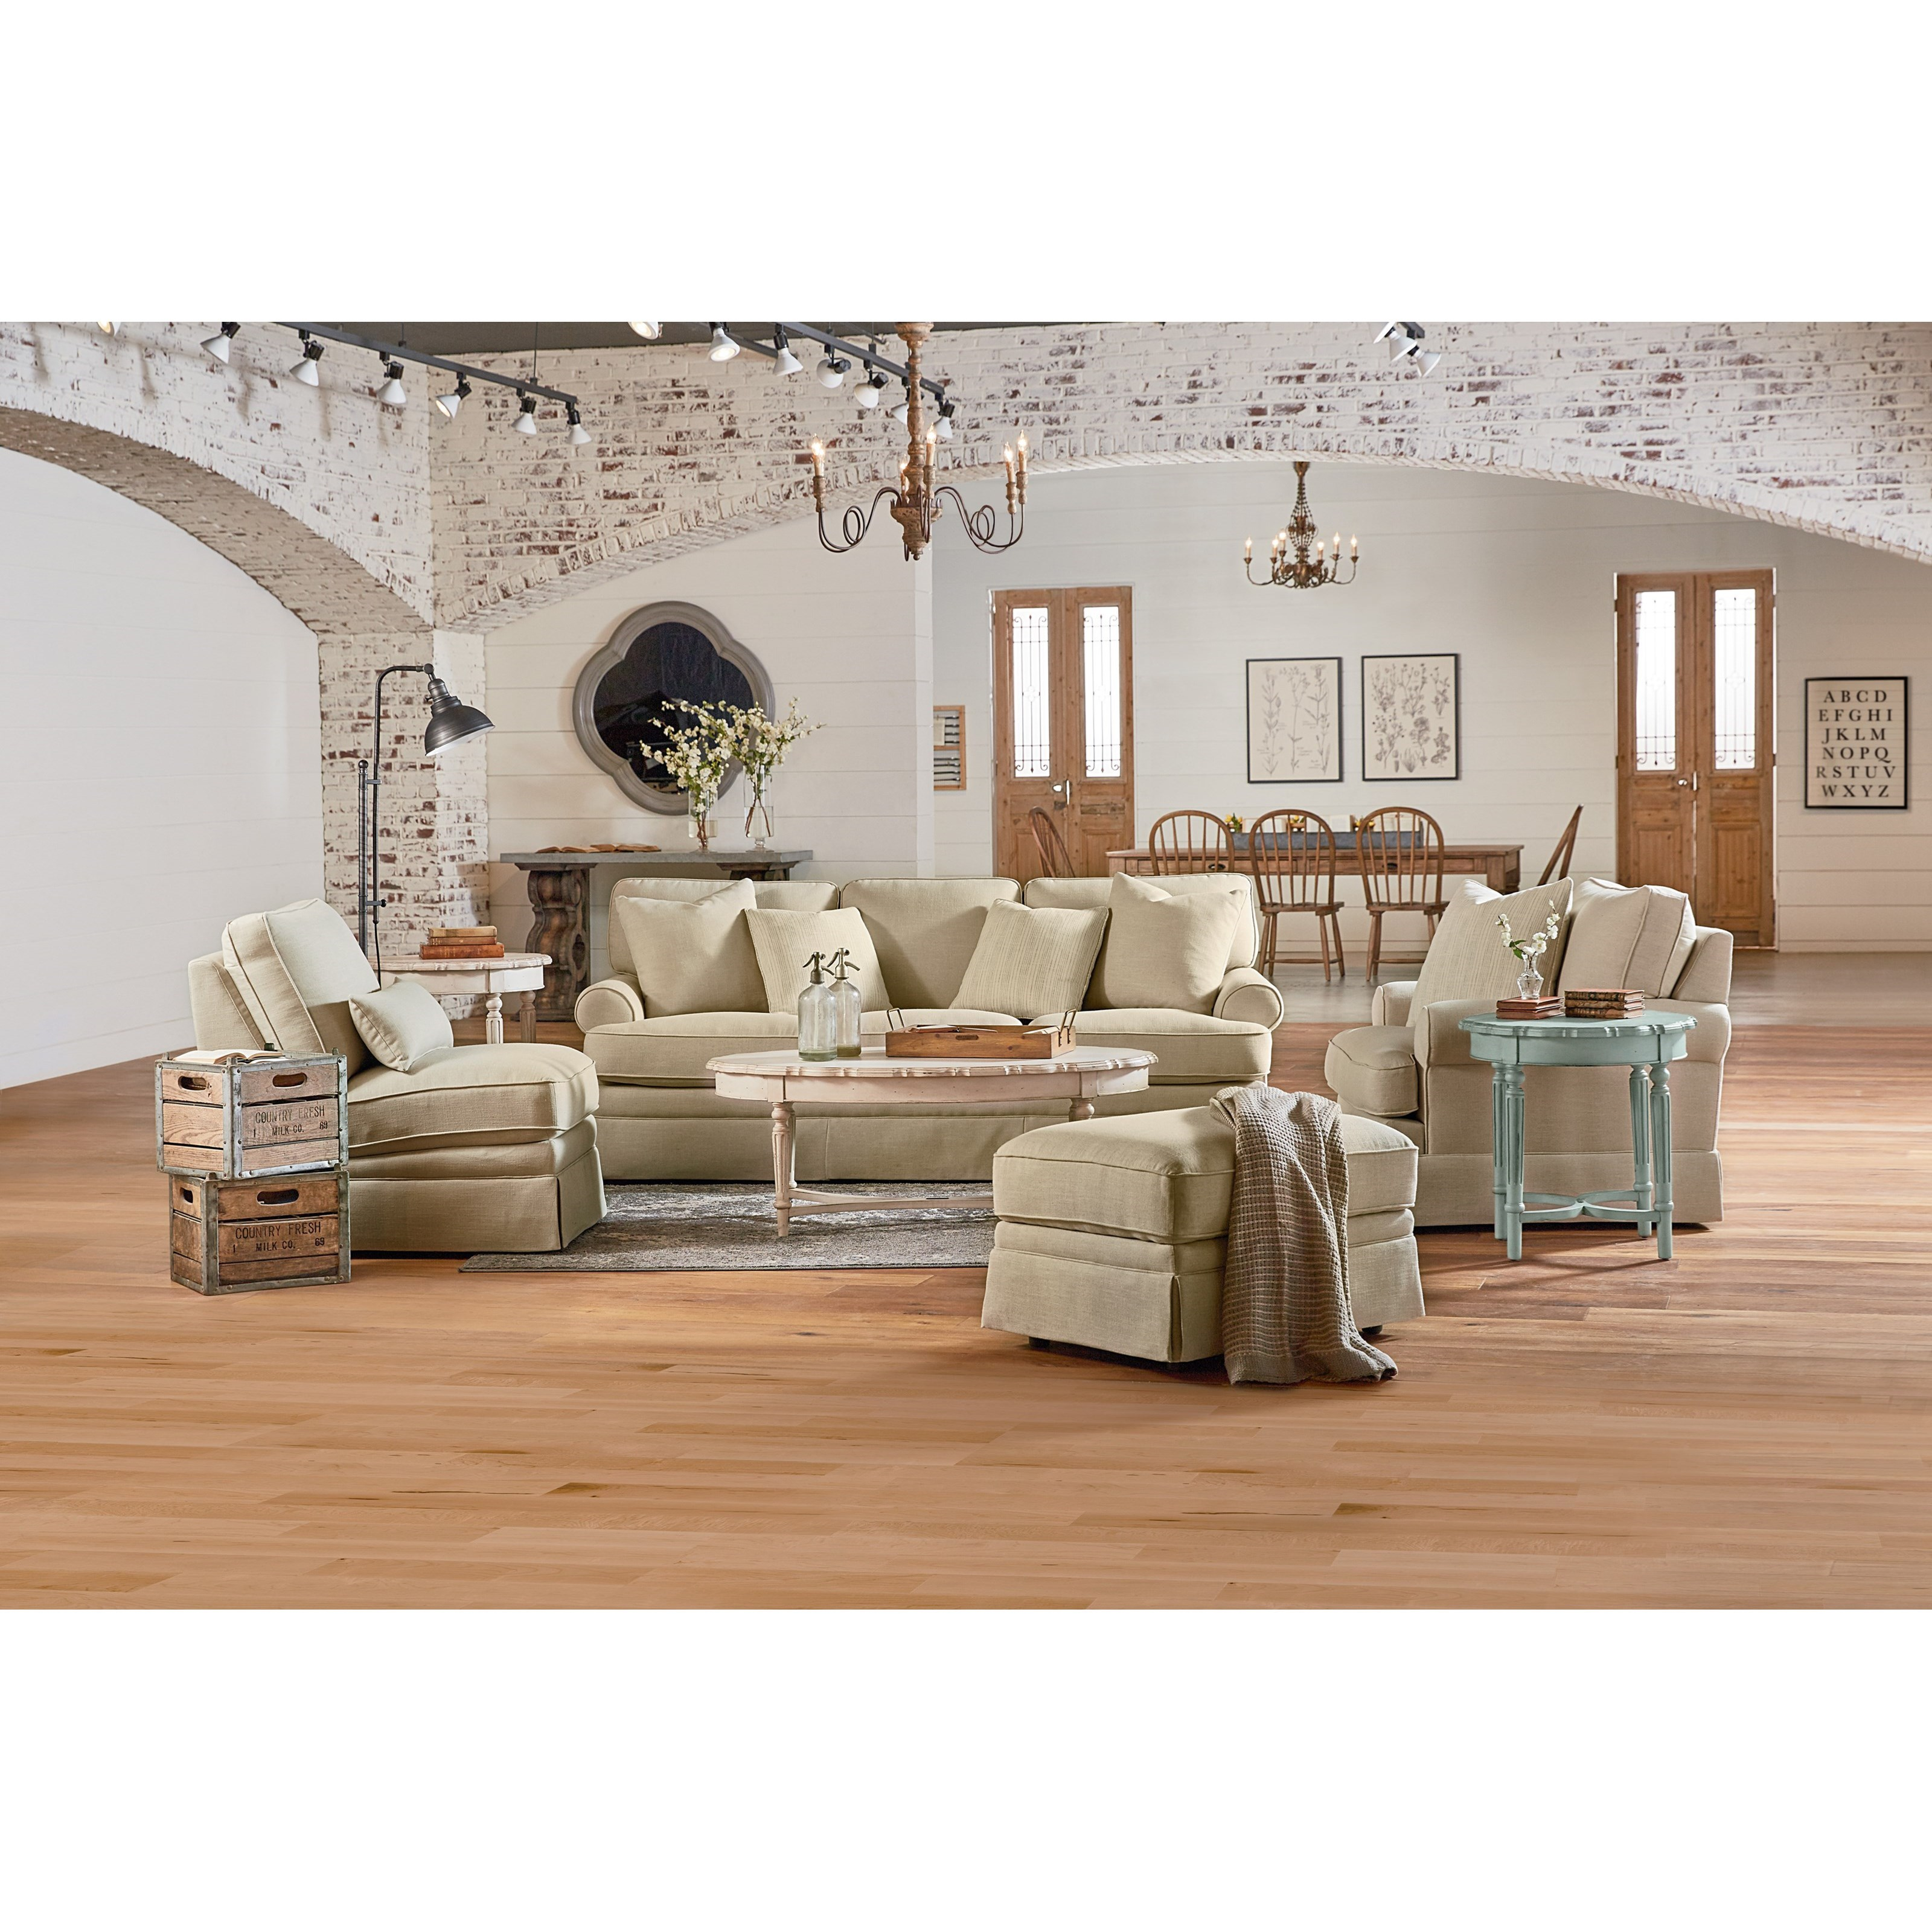 Magnolia Home By Joanna Gaines Heritage Living Room Group Olinde 39 S Furniture Upholstery Group